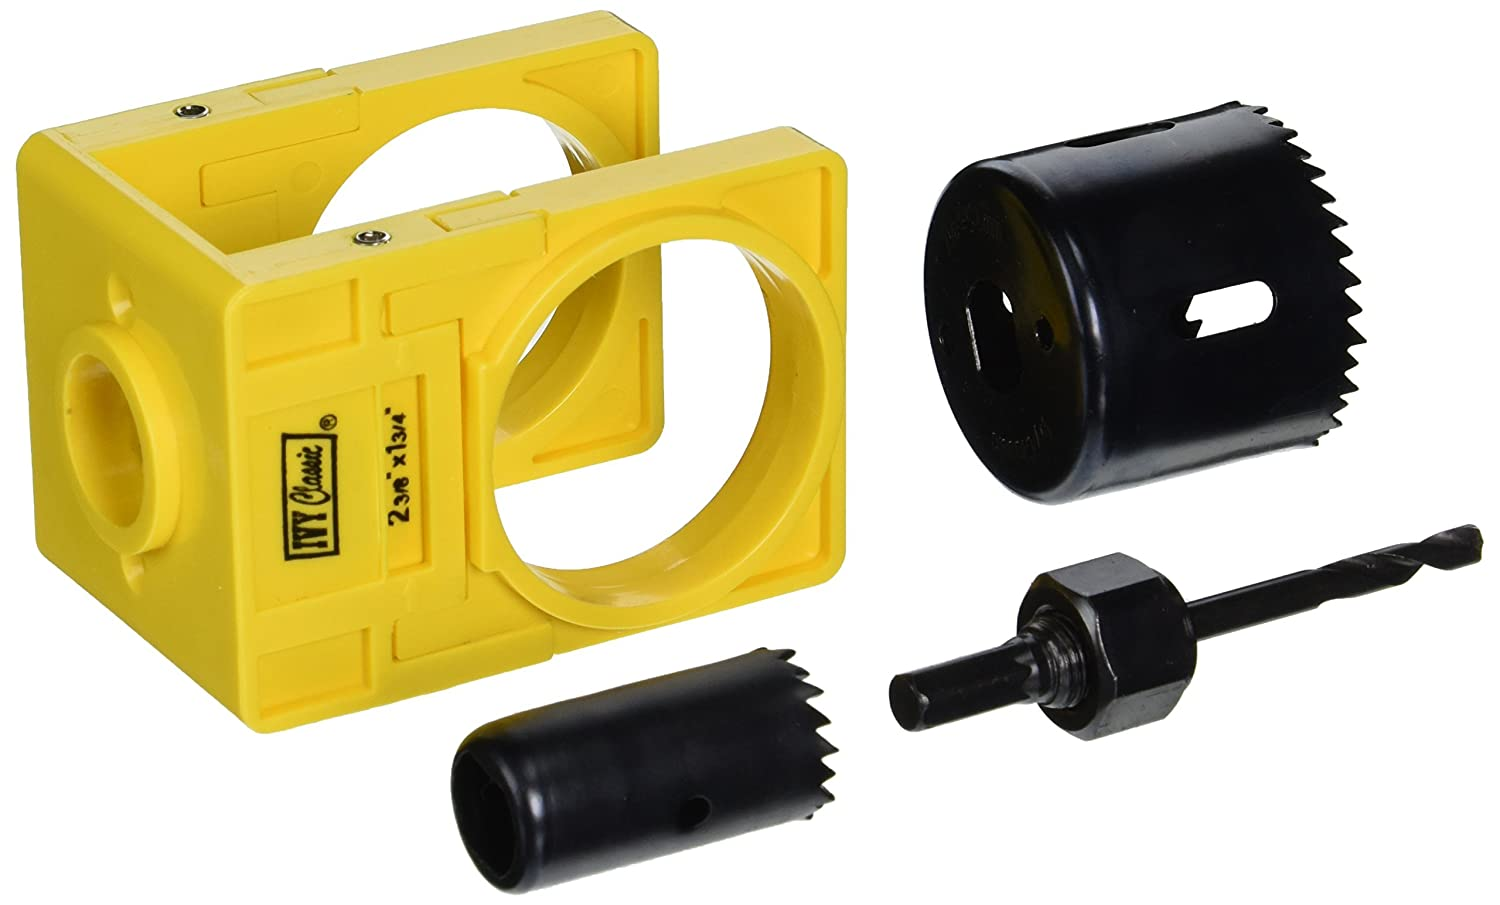 IVY Classic 27003 Carbon-Steel Lock Installation Kit with Guide Template for Wood Doors, Carded